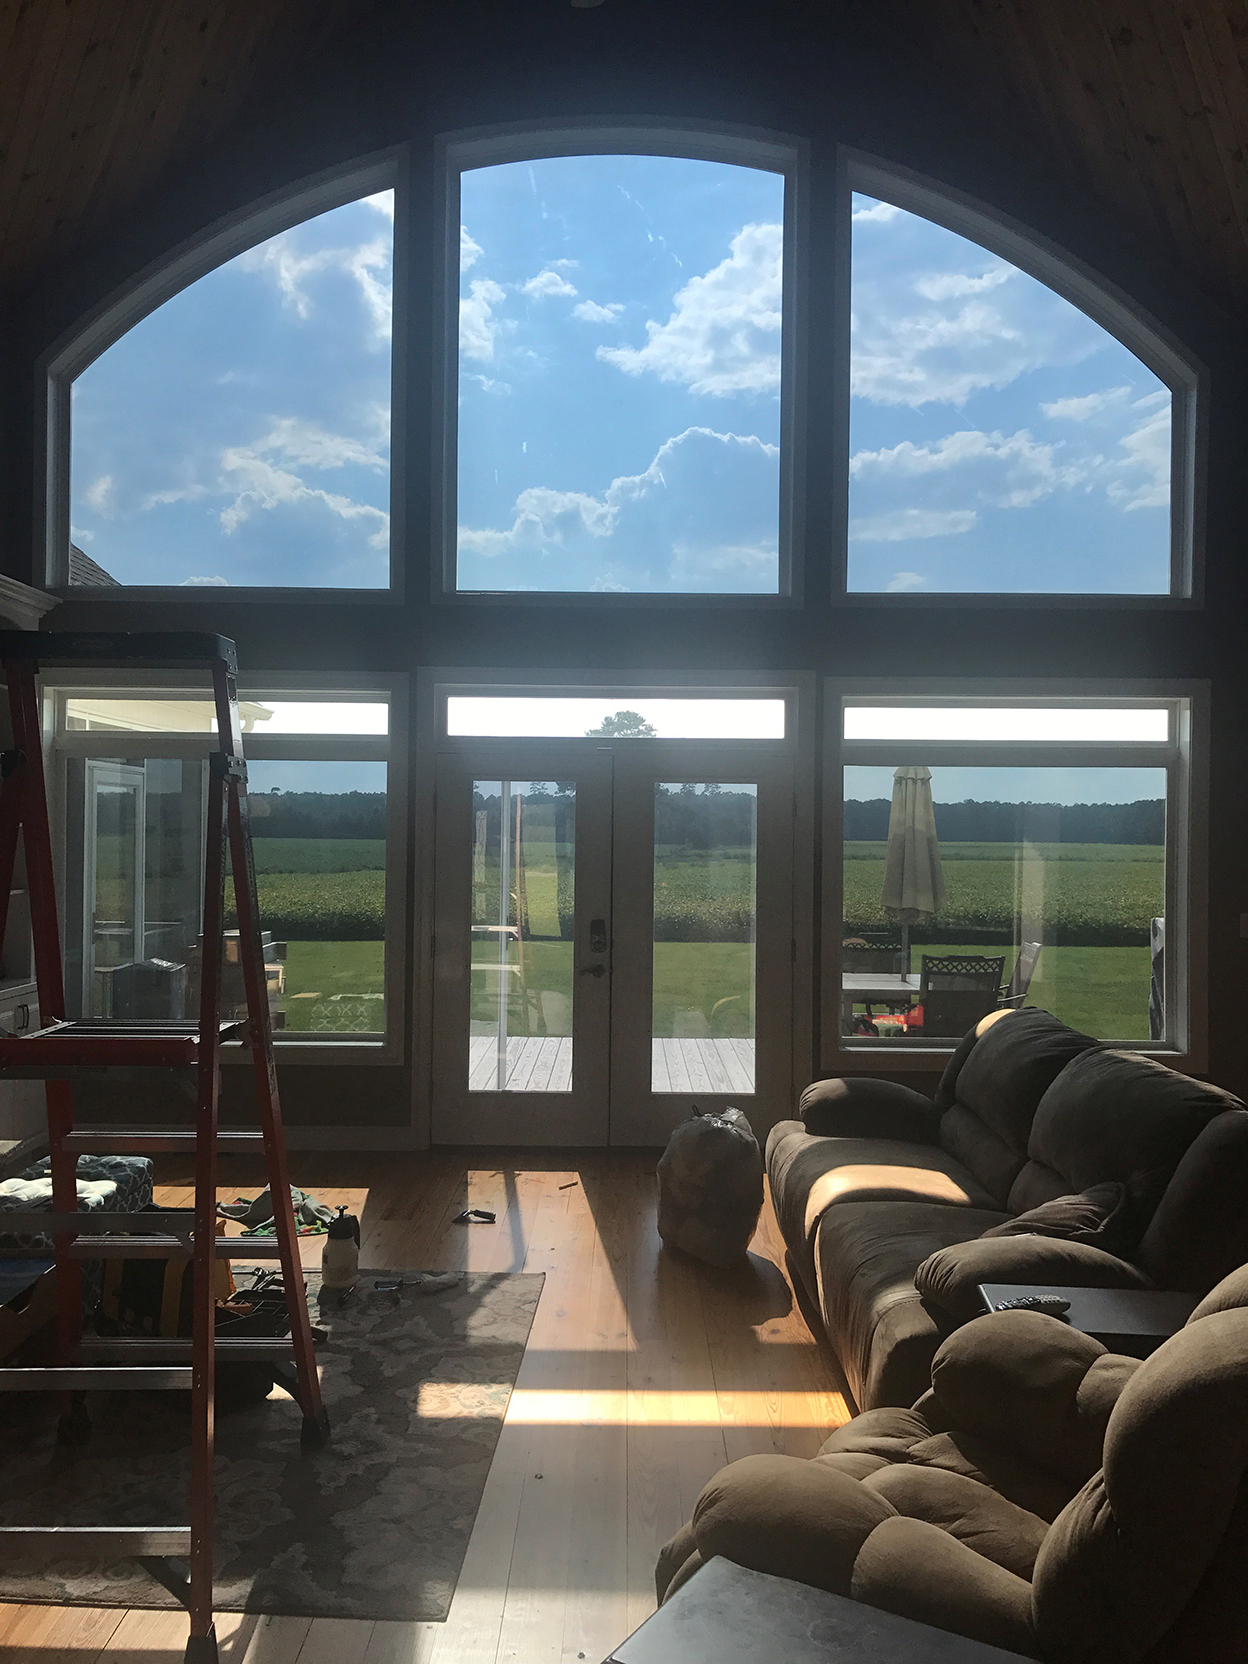 window tinting quote, residential window tinting, home window tinting, house window tinting